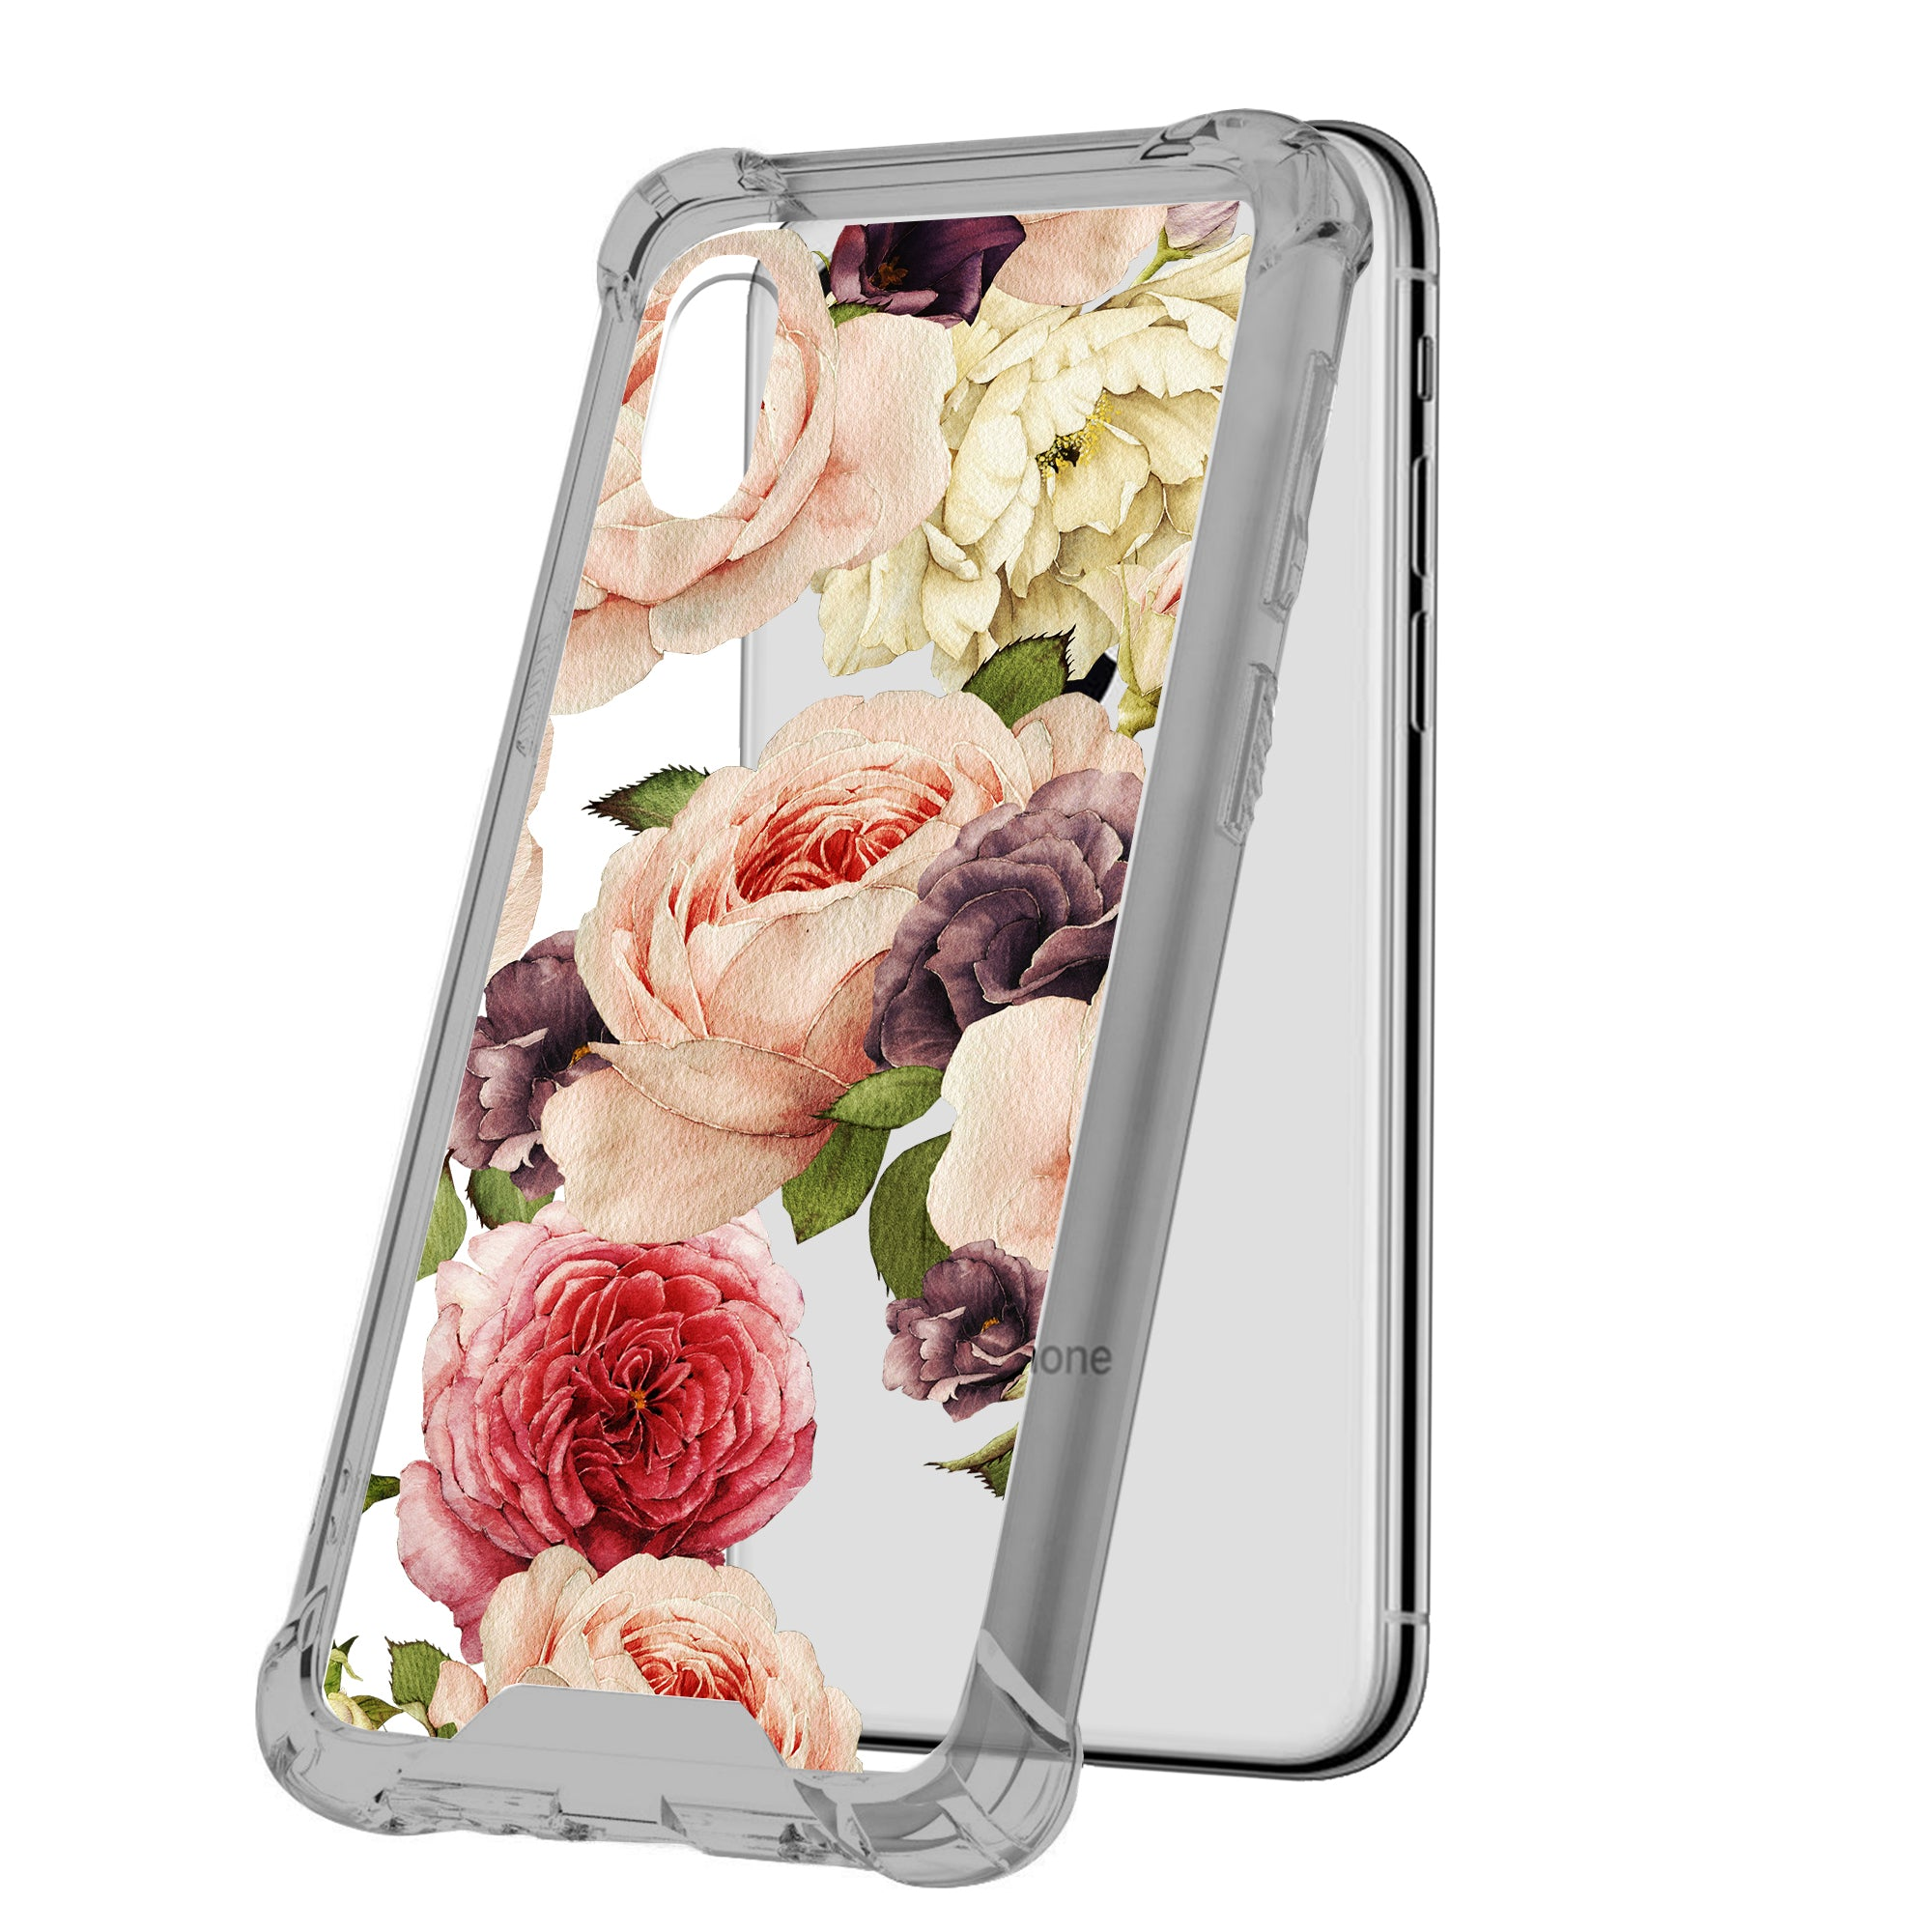 For-Apple-iPhone-Xs-Max-iPhone-Xs-Max-Black-TPU-Bumper-Case-Floral-Designs thumbnail 23